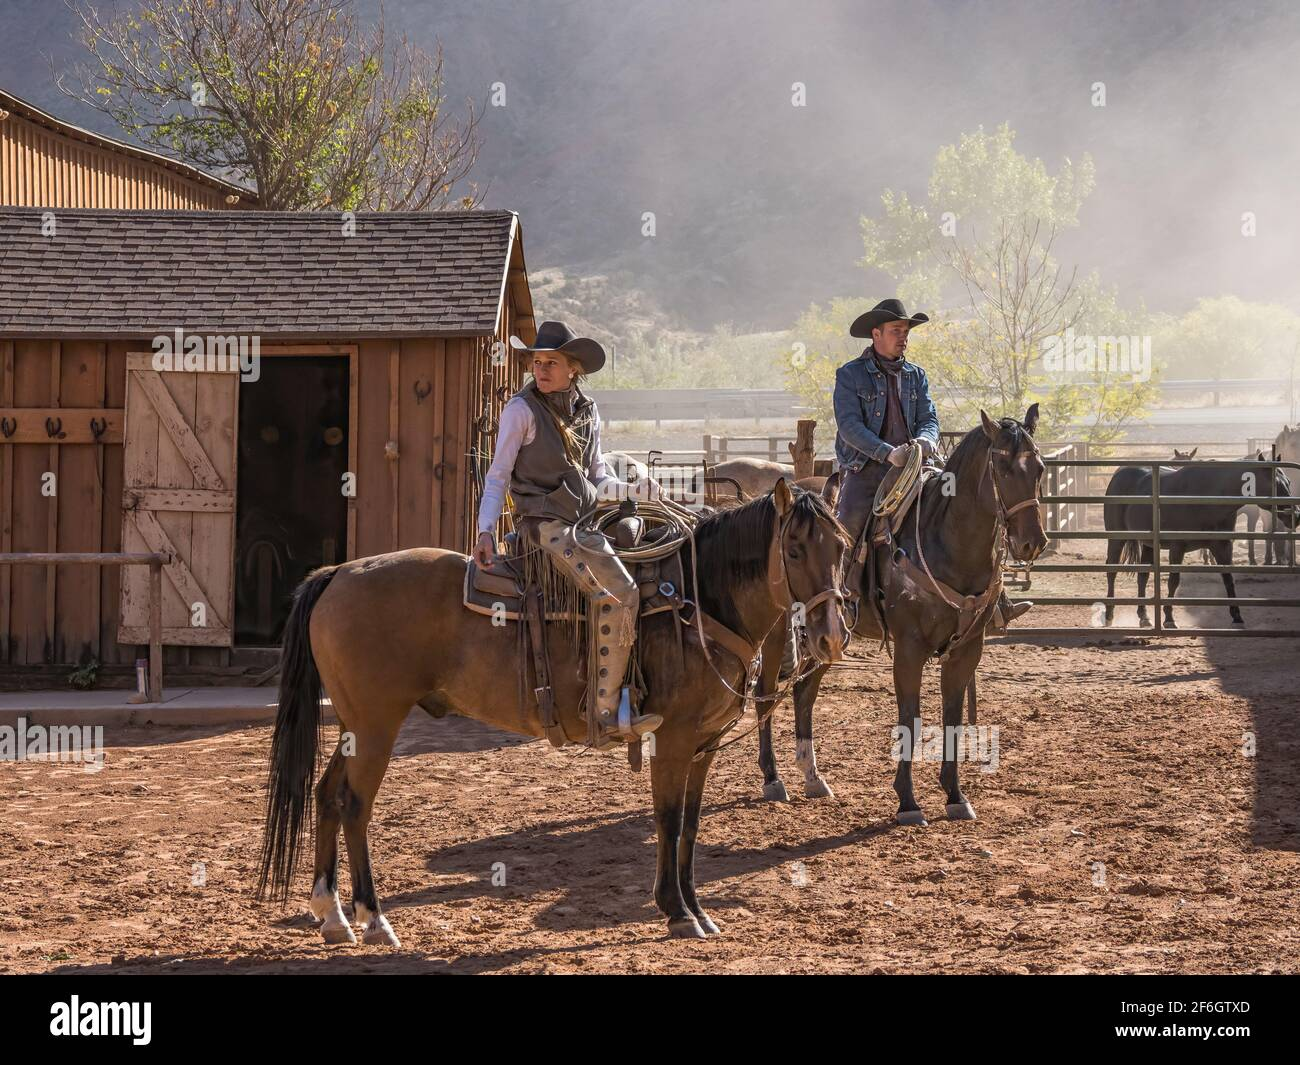 A young attractive working cowgirl wrangler and a cowboy on their horses on a ranch near Moab, Utah. Stock Photo